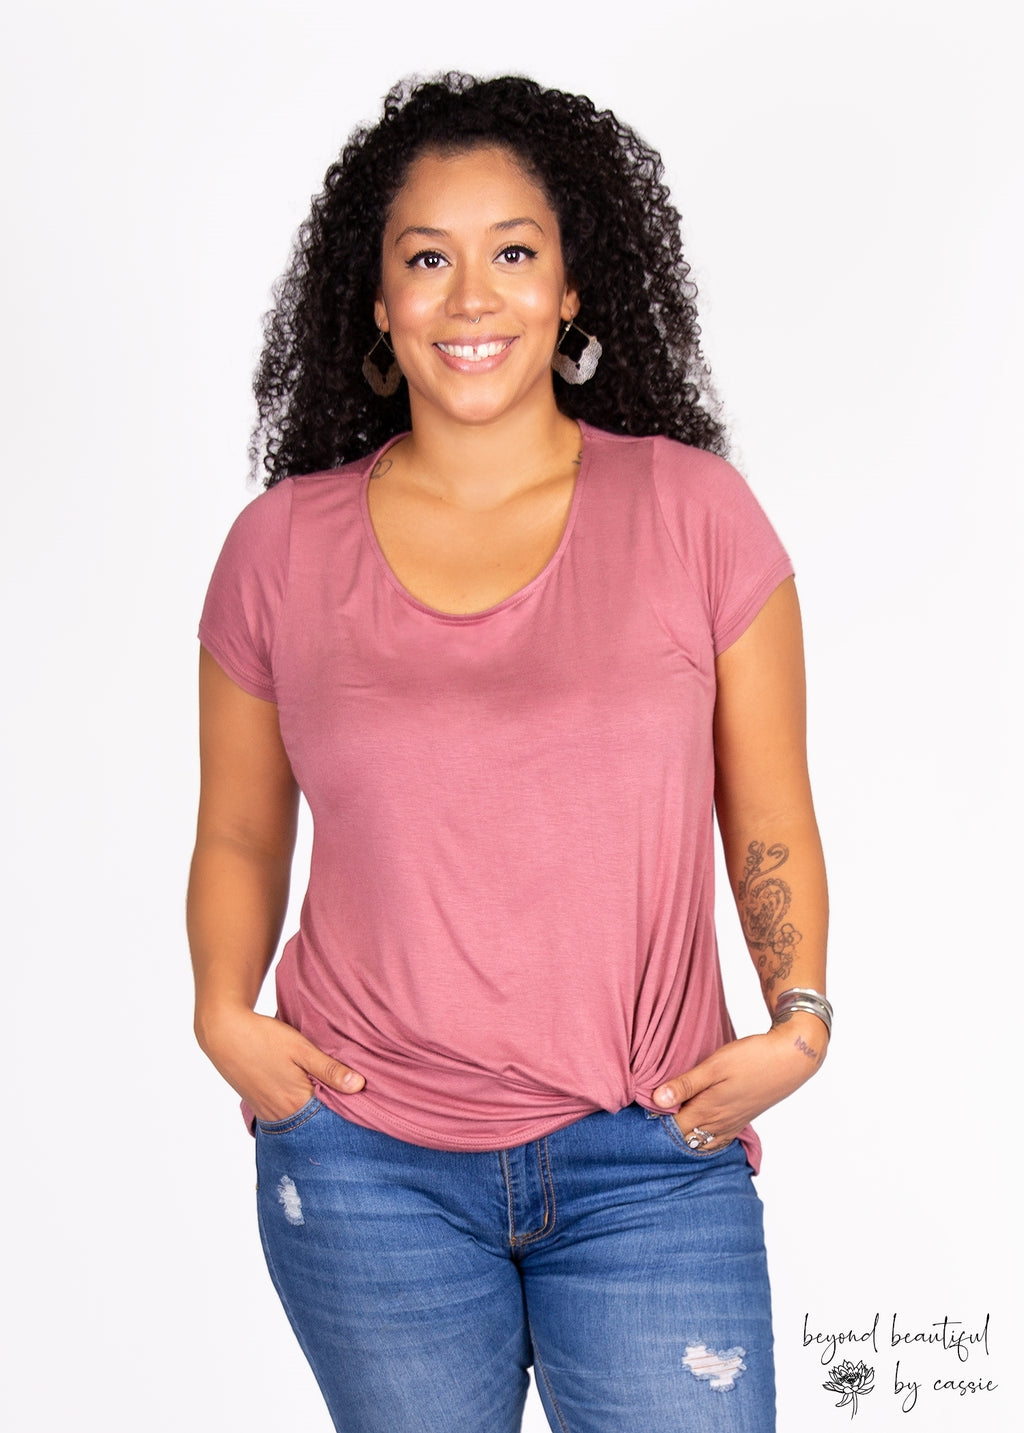 Paisley Raye Nerine Tee with Beyond Beautiful by Cassie, shop now at http://beyondbeautifulbycassie.com/